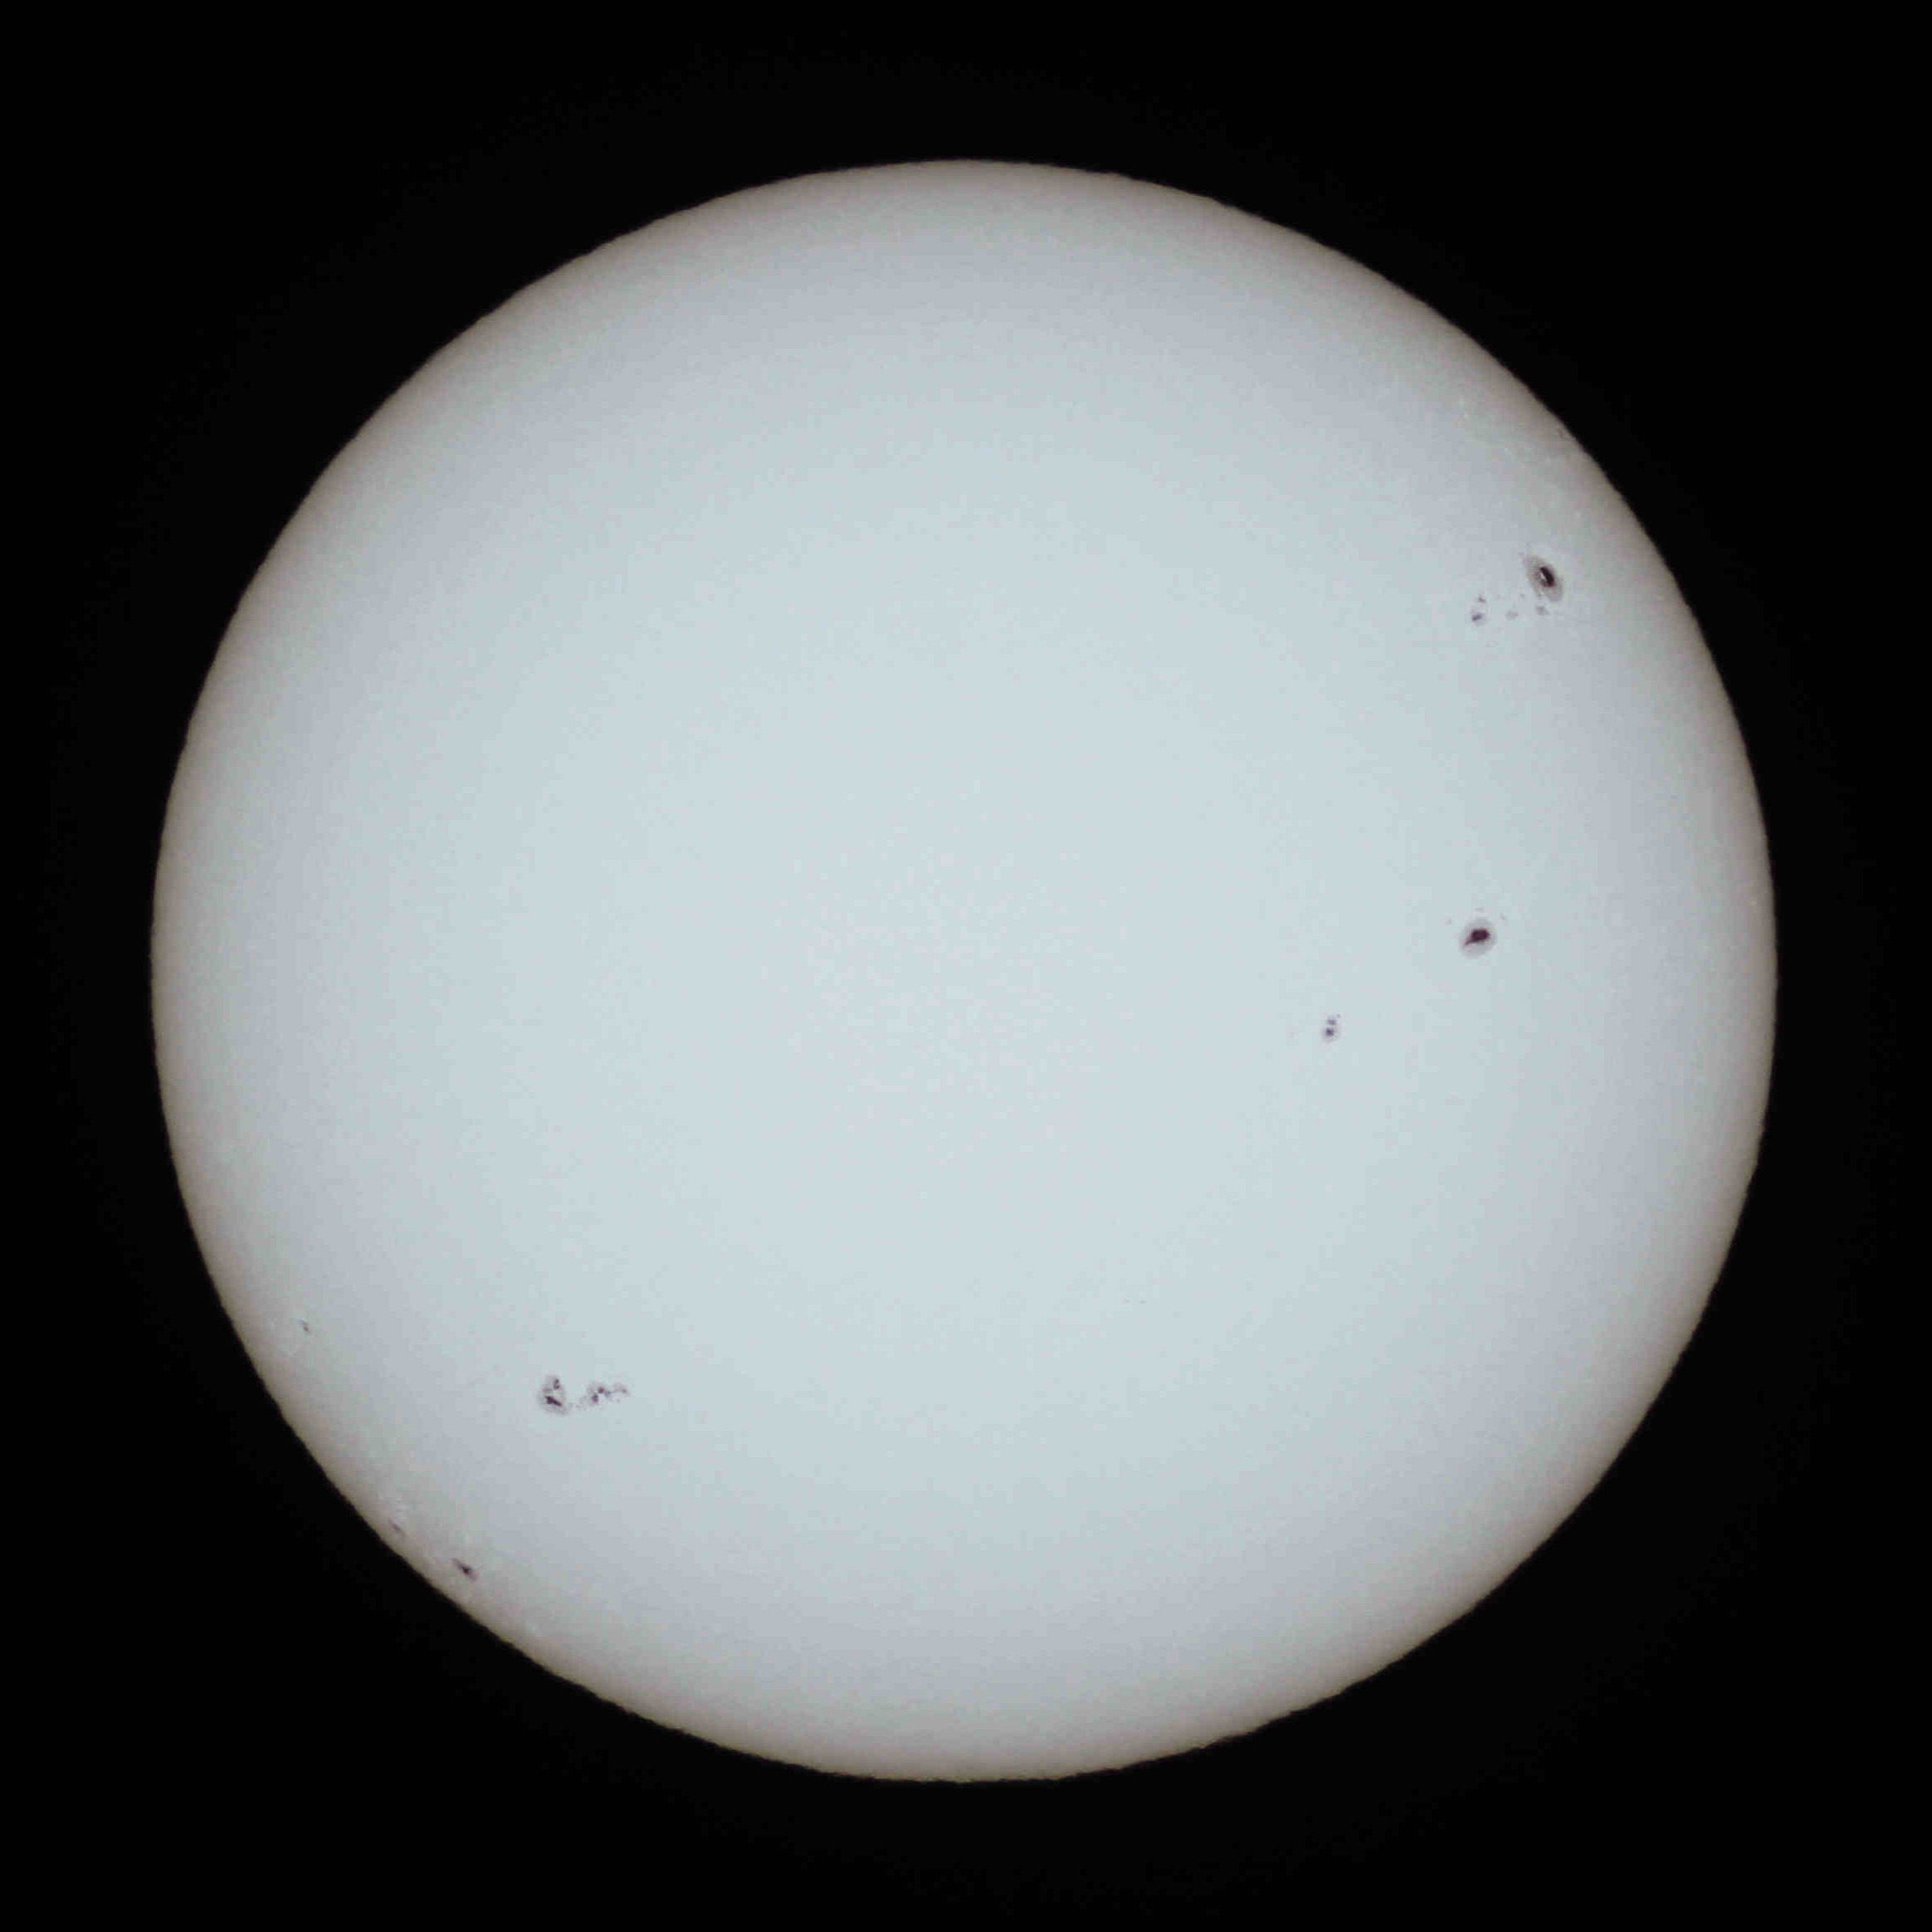 Large Image Of The Sun - Our Star